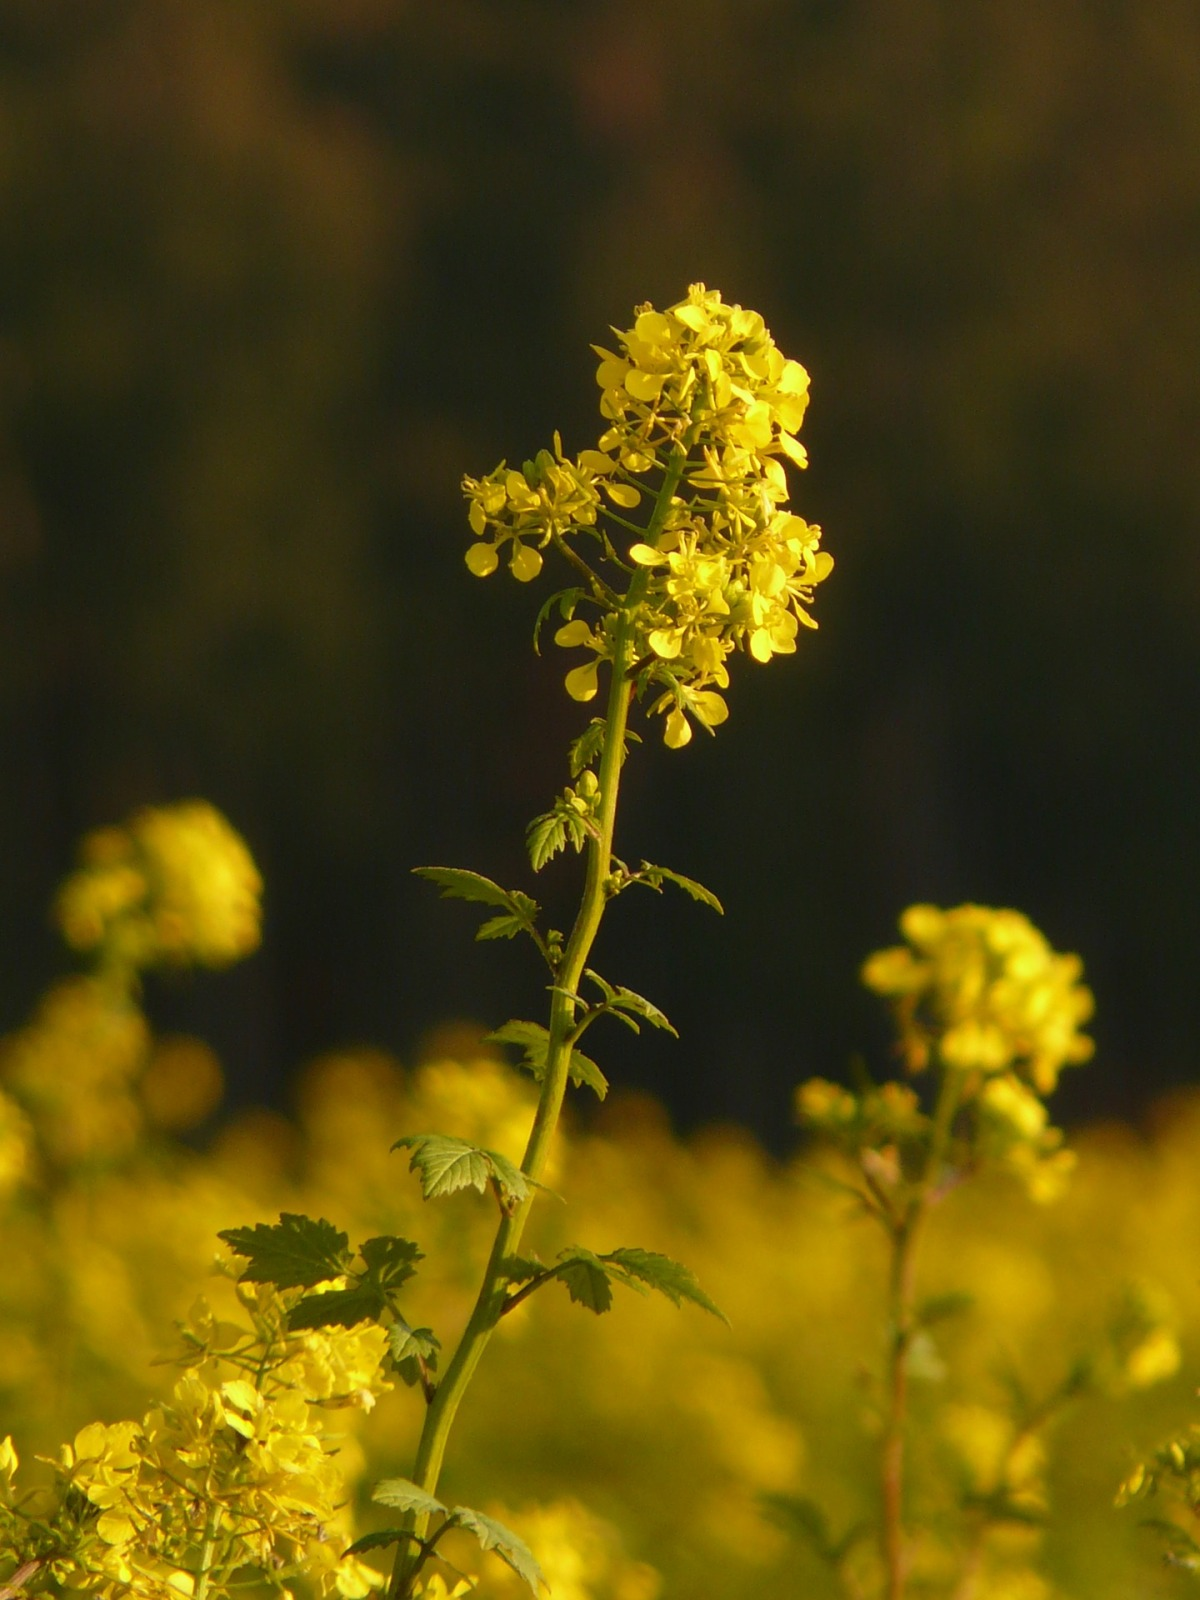 Rape or rapeseed plant dangerous toxic and poisonous to dogs and why / Plants that are toxic to dogs / first published on Perfect cocker spaniel blog (C)